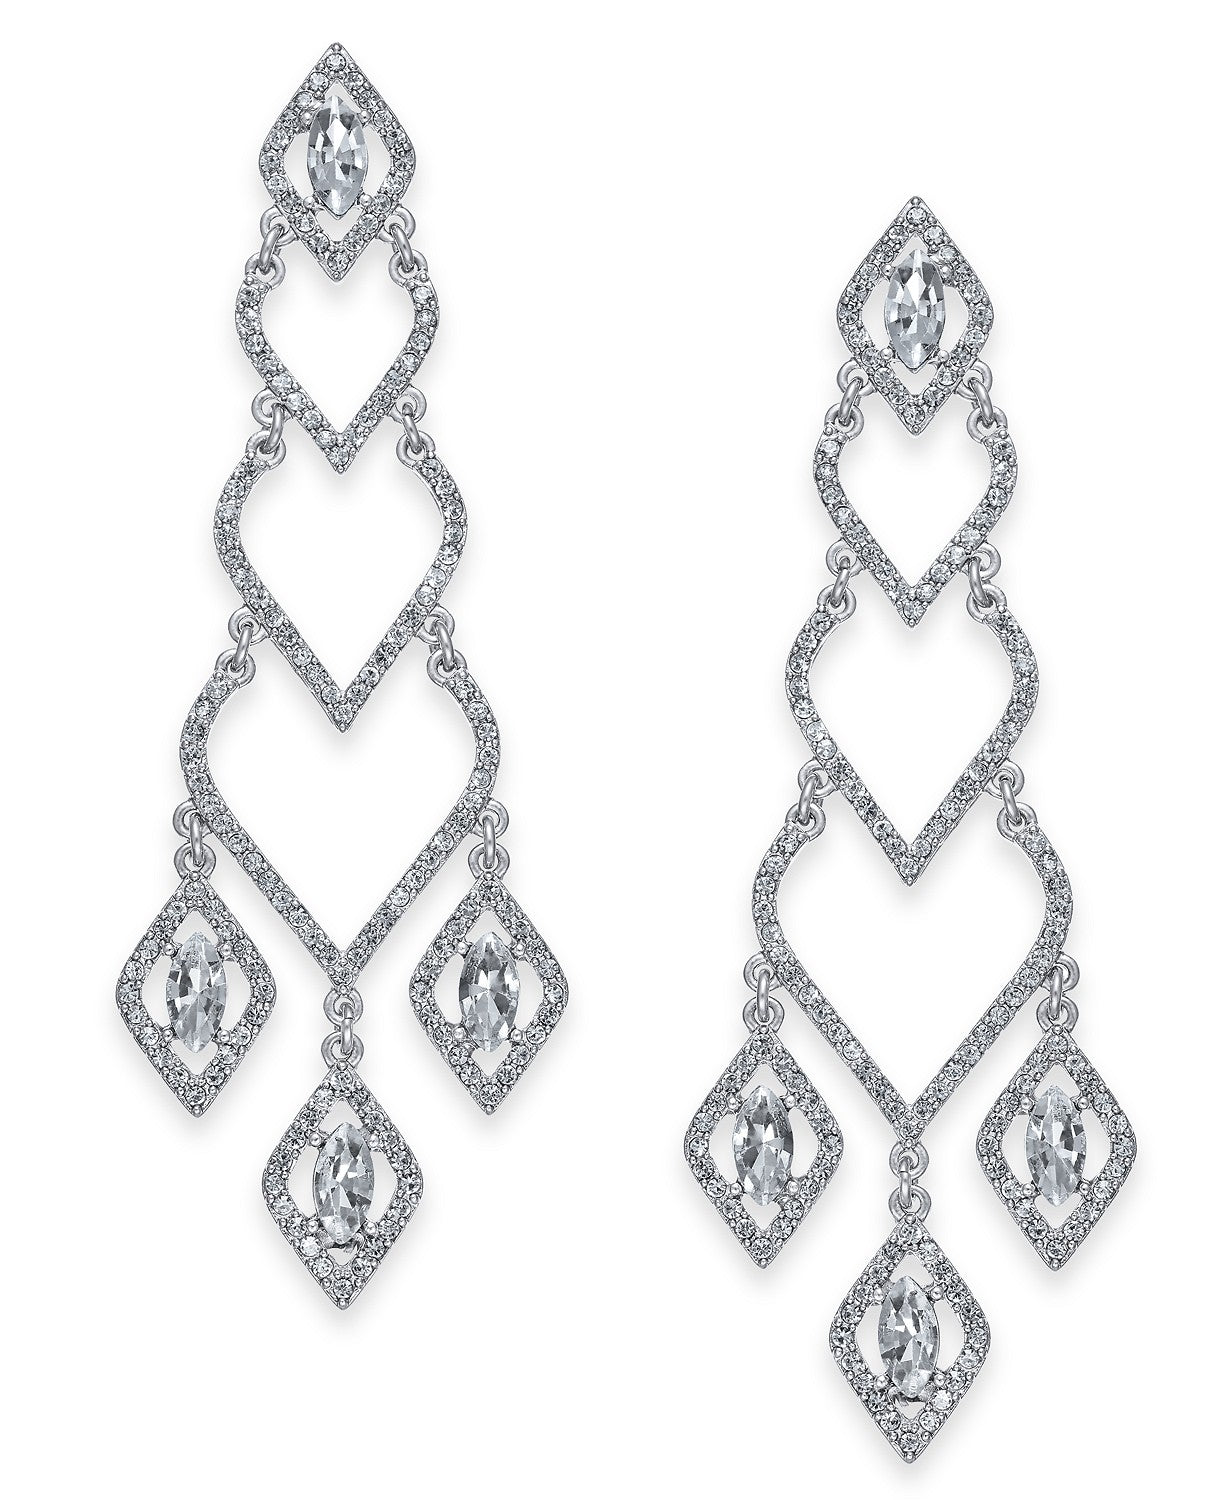 I.N.C. Silver-Tone Stone & Pavé Chandelier Earrings